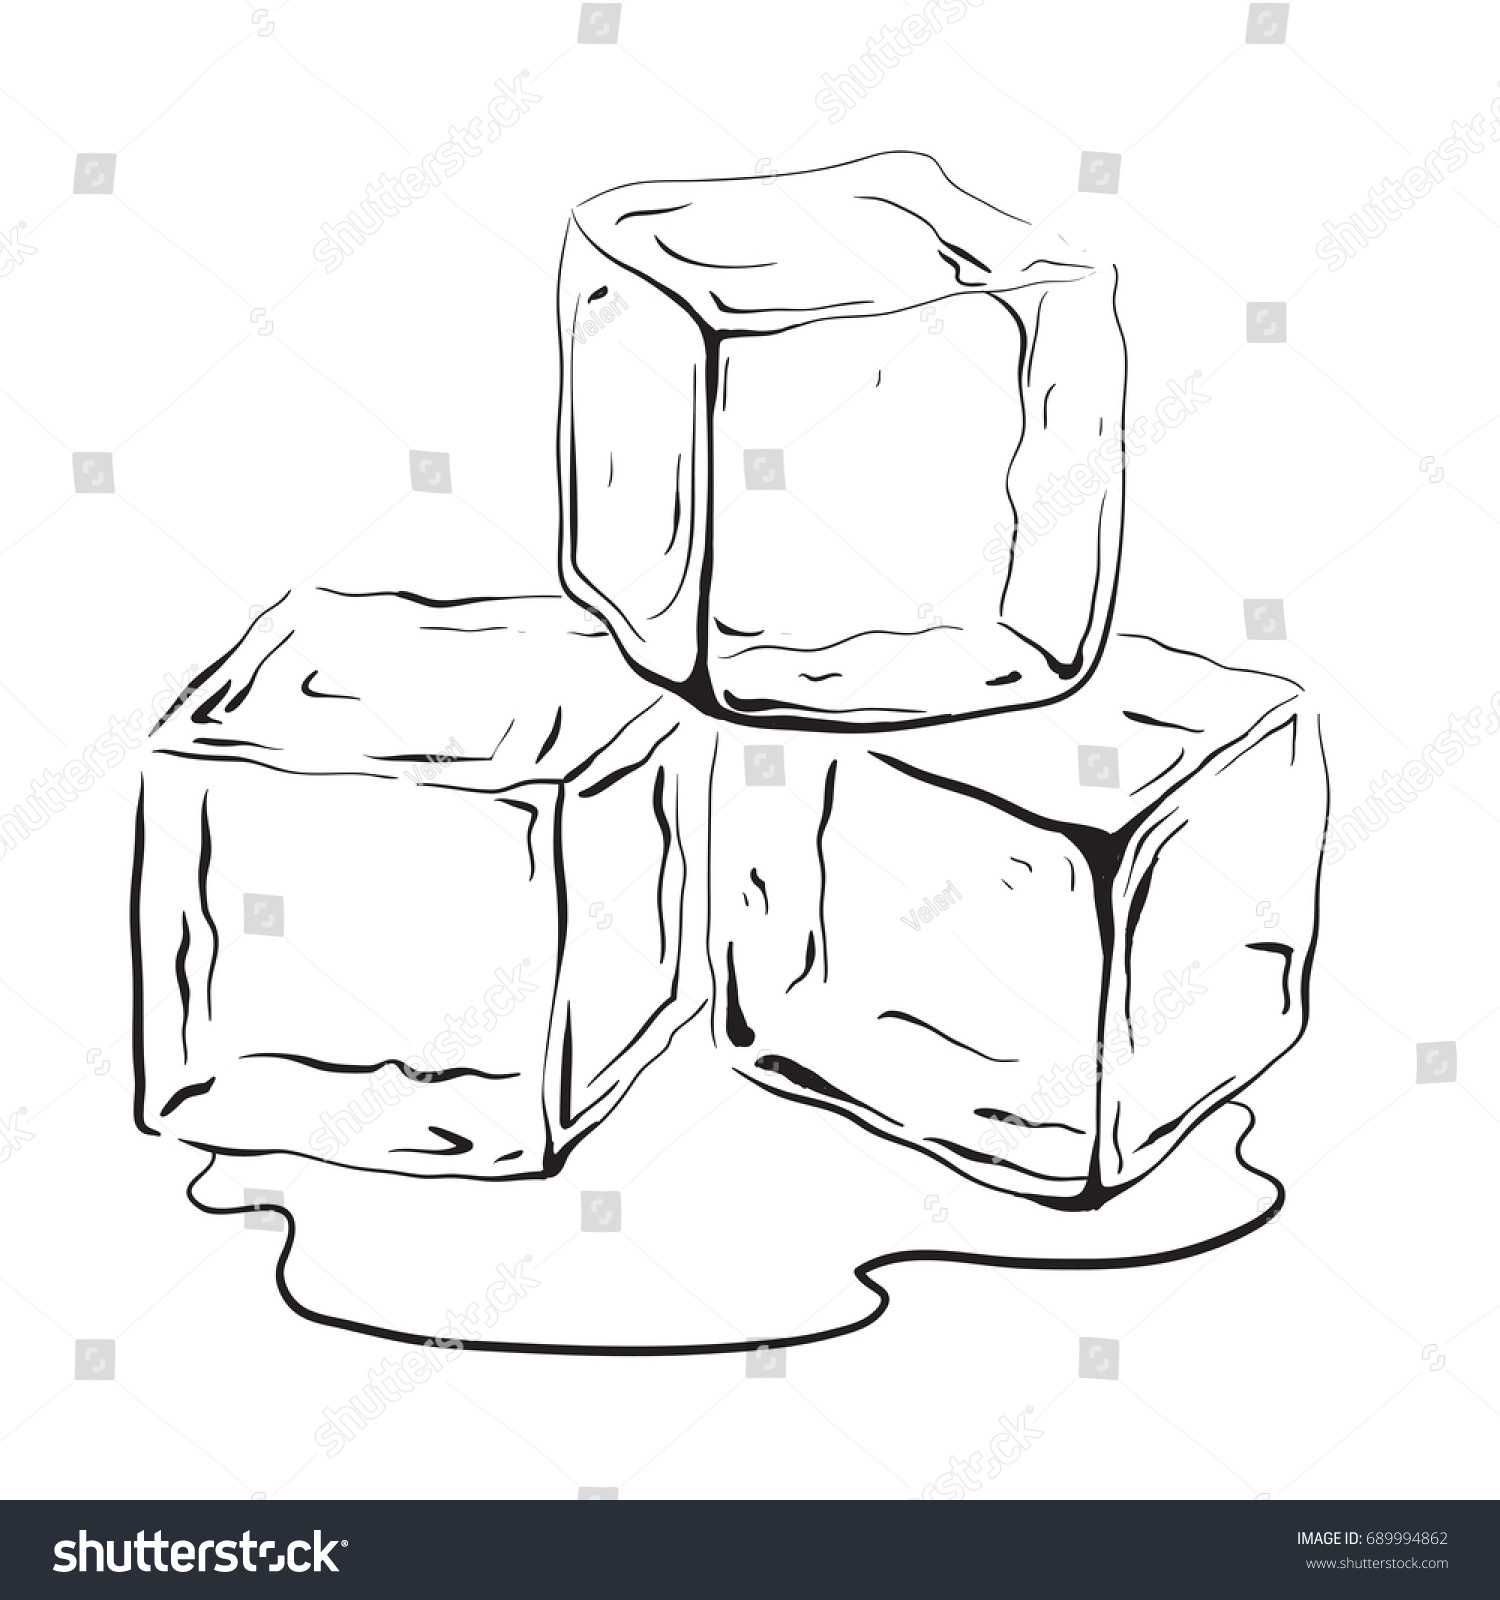 Ice PNG Black And White Transparent Ice Black And White.PNG Images.